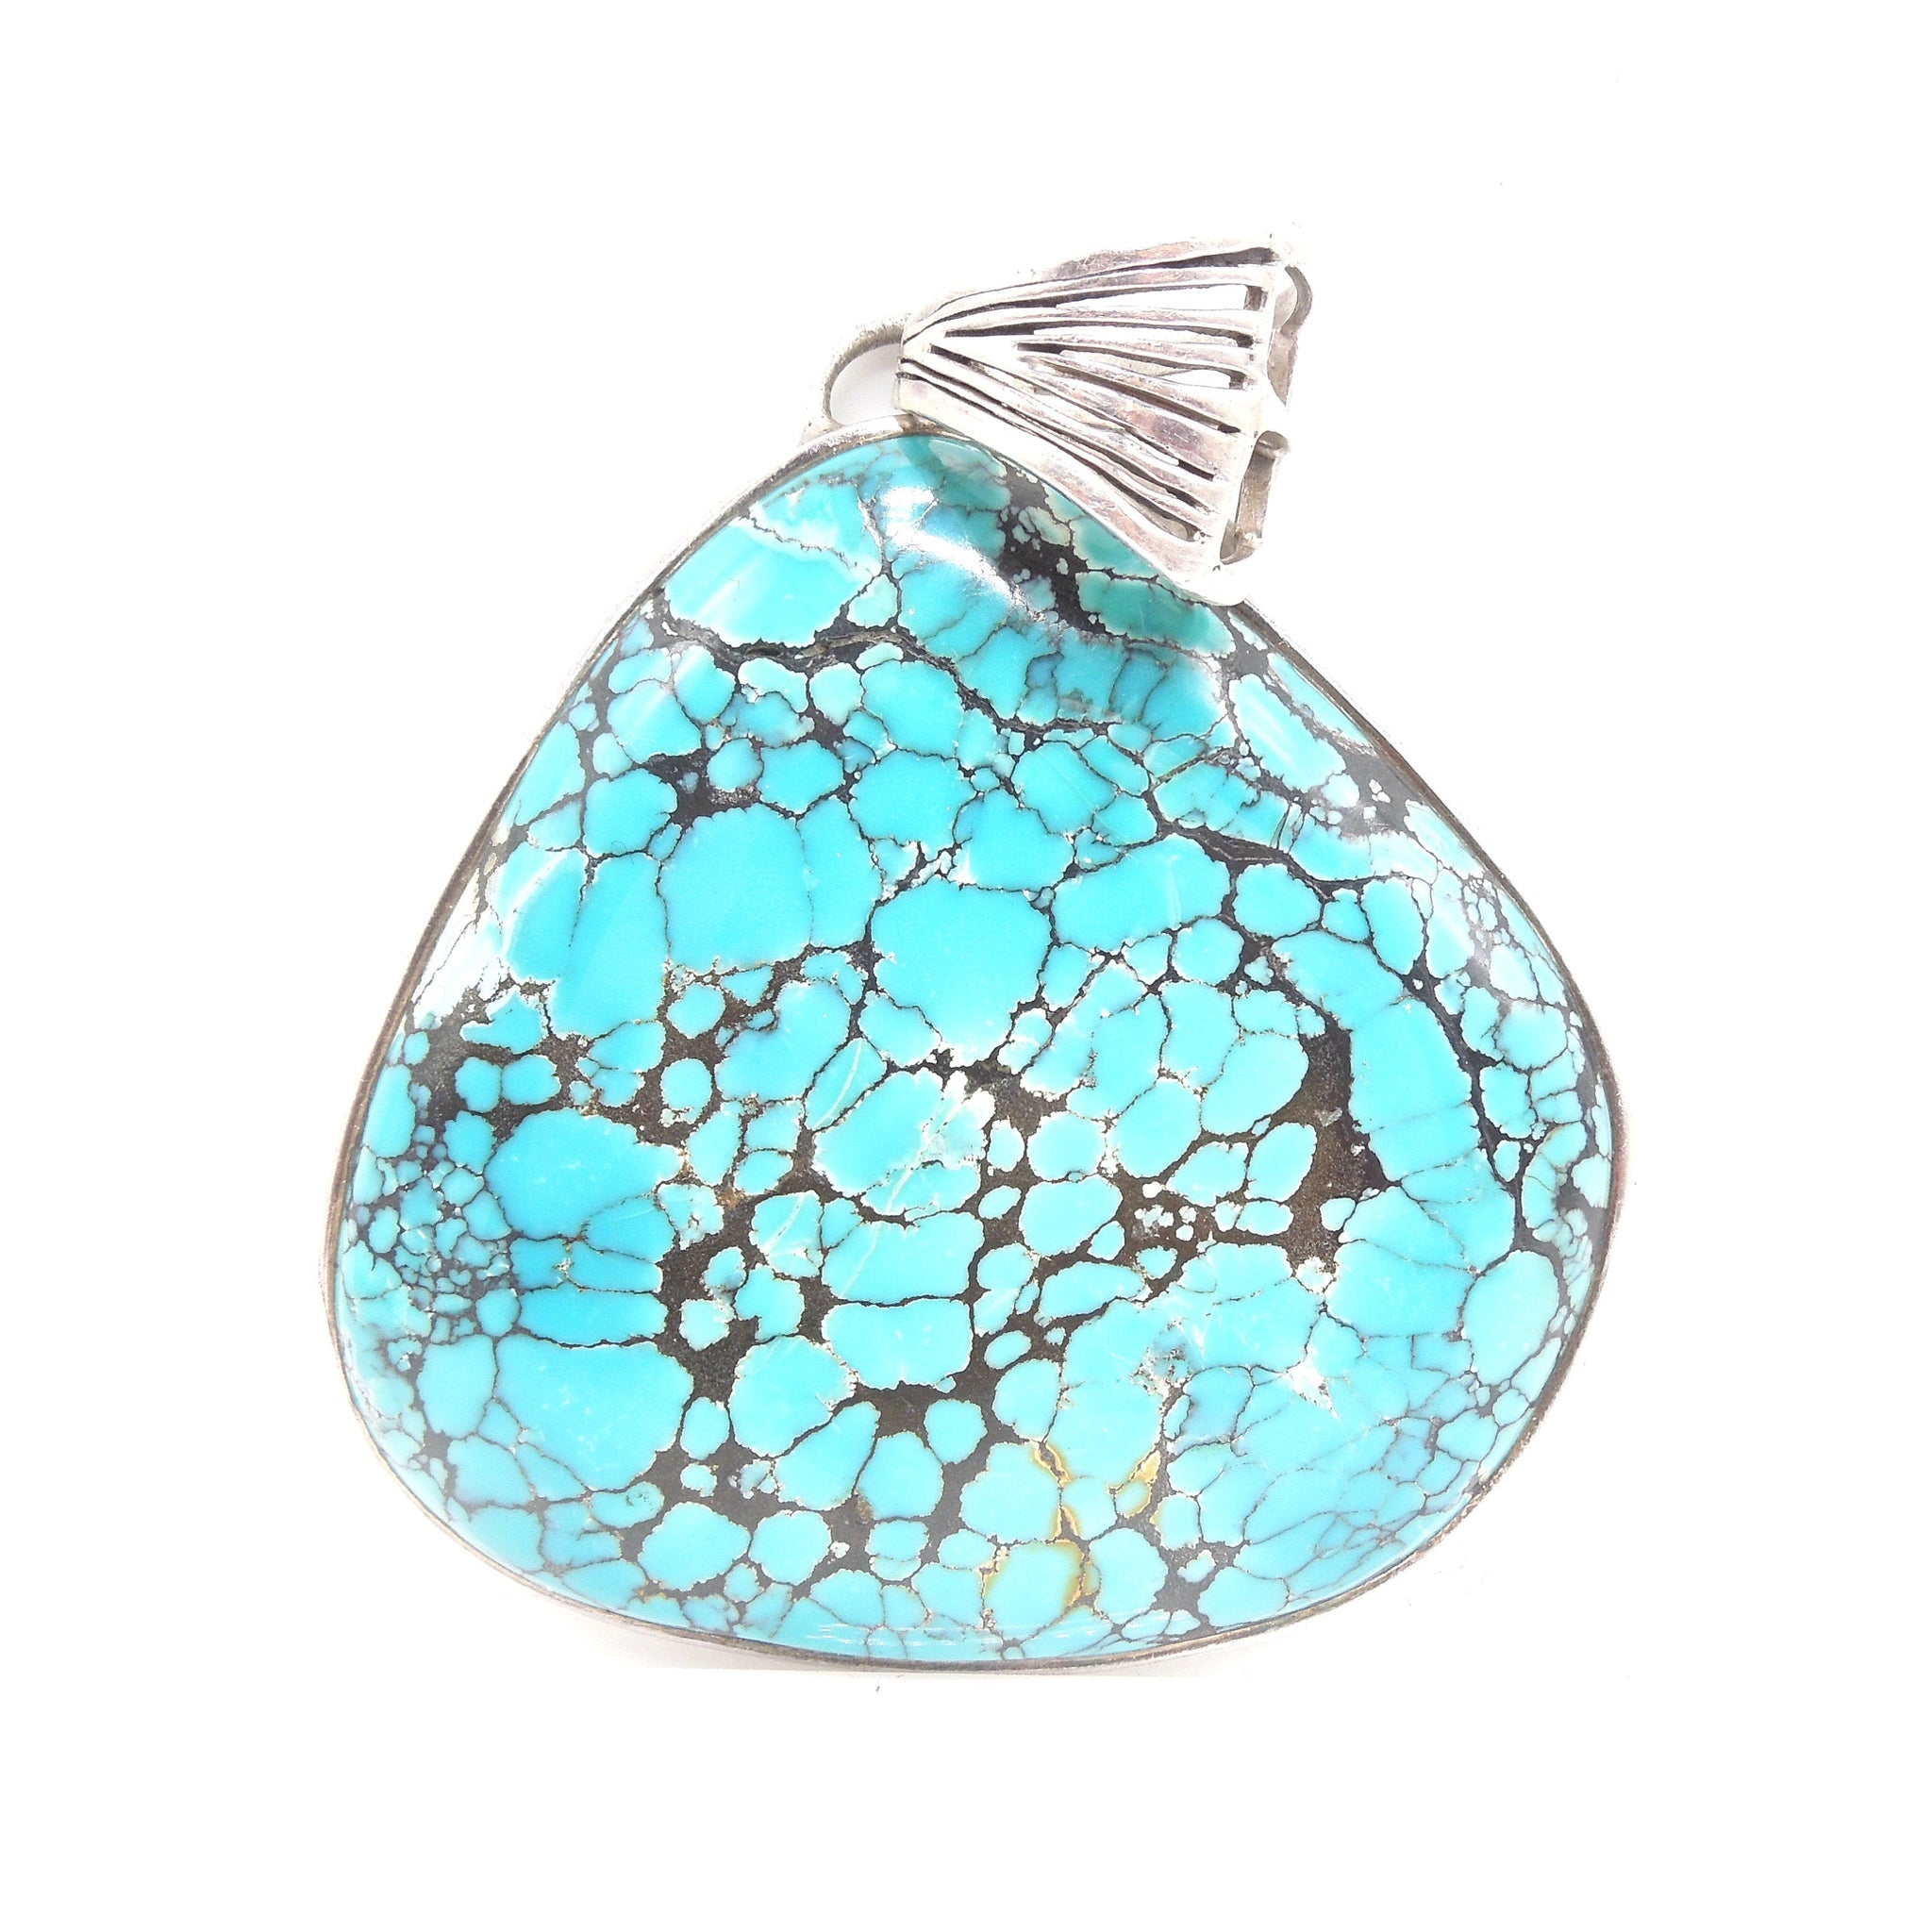 Large King's Manassa Turquoise and Sterling Silver Pendant